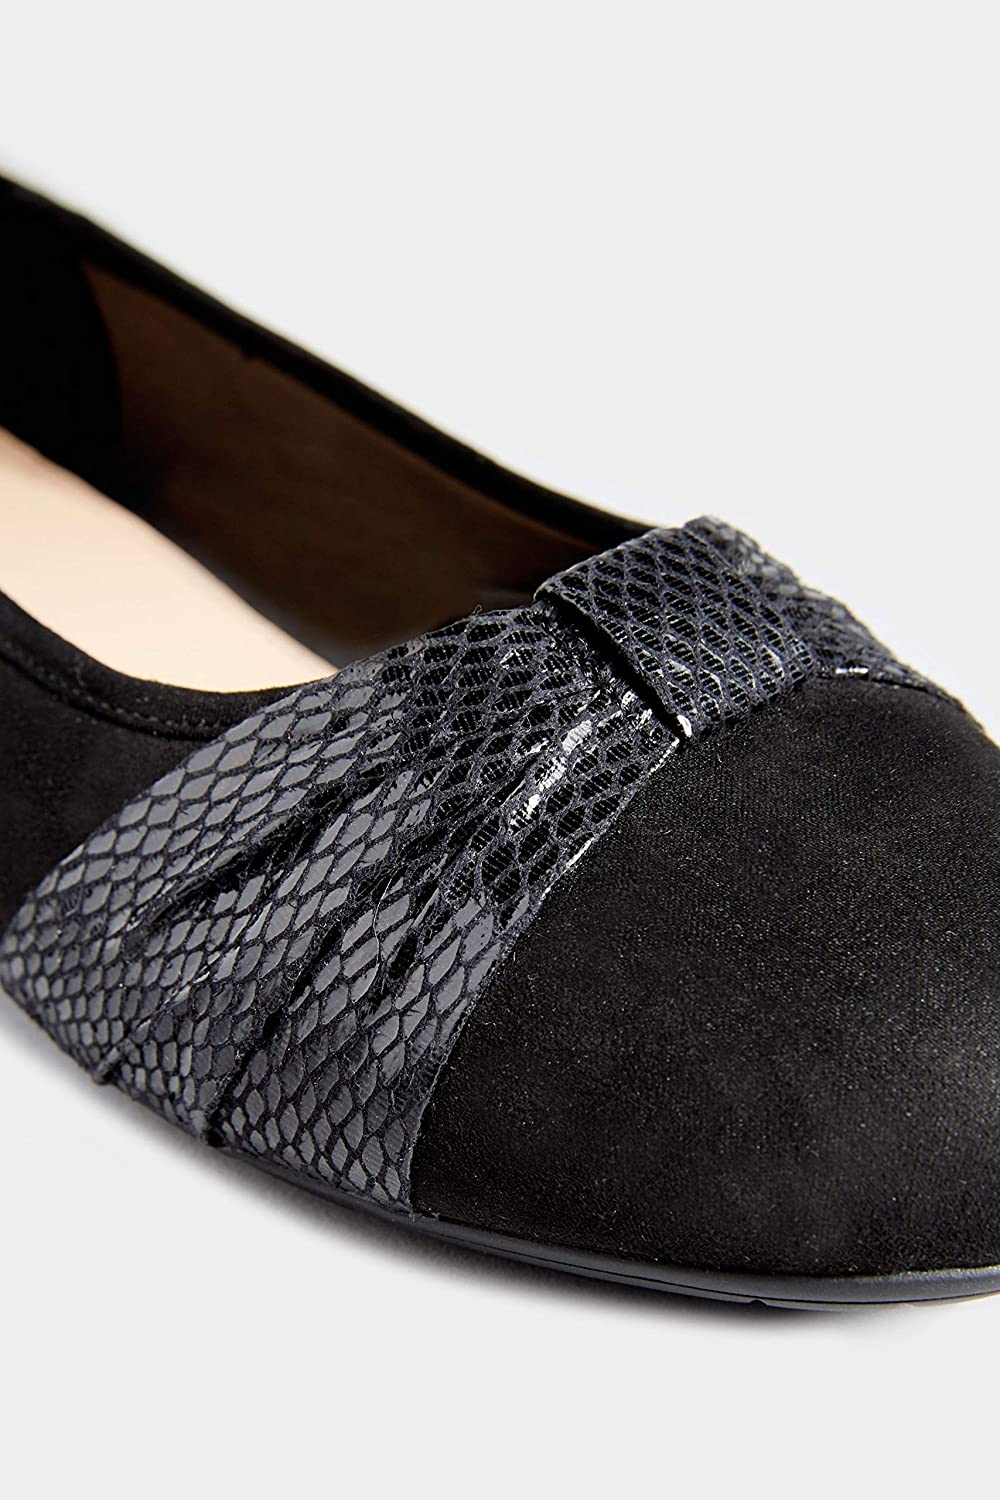 Yours Clothing Womens Faux Suede Snake Print Ballerina Pumps in Extra Wide Fit